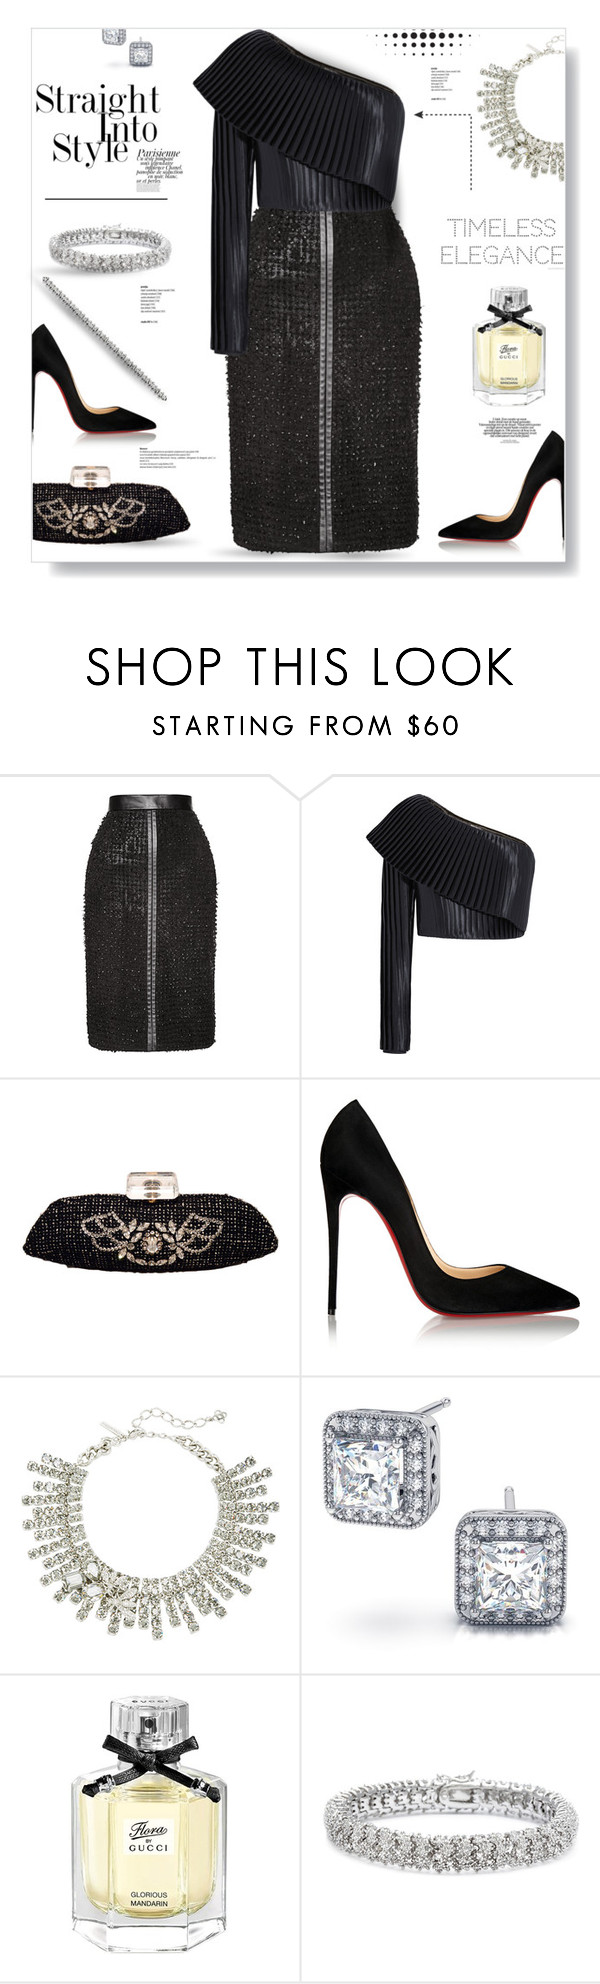 """Timeless Elegance..."" by desert-belle ❤ liked on Polyvore featuring J. Mendel, Balmain, Chanel, Christian Louboutin, Oscar de la Renta, Magdalena, Gucci, Finesque, women's clothing and women"